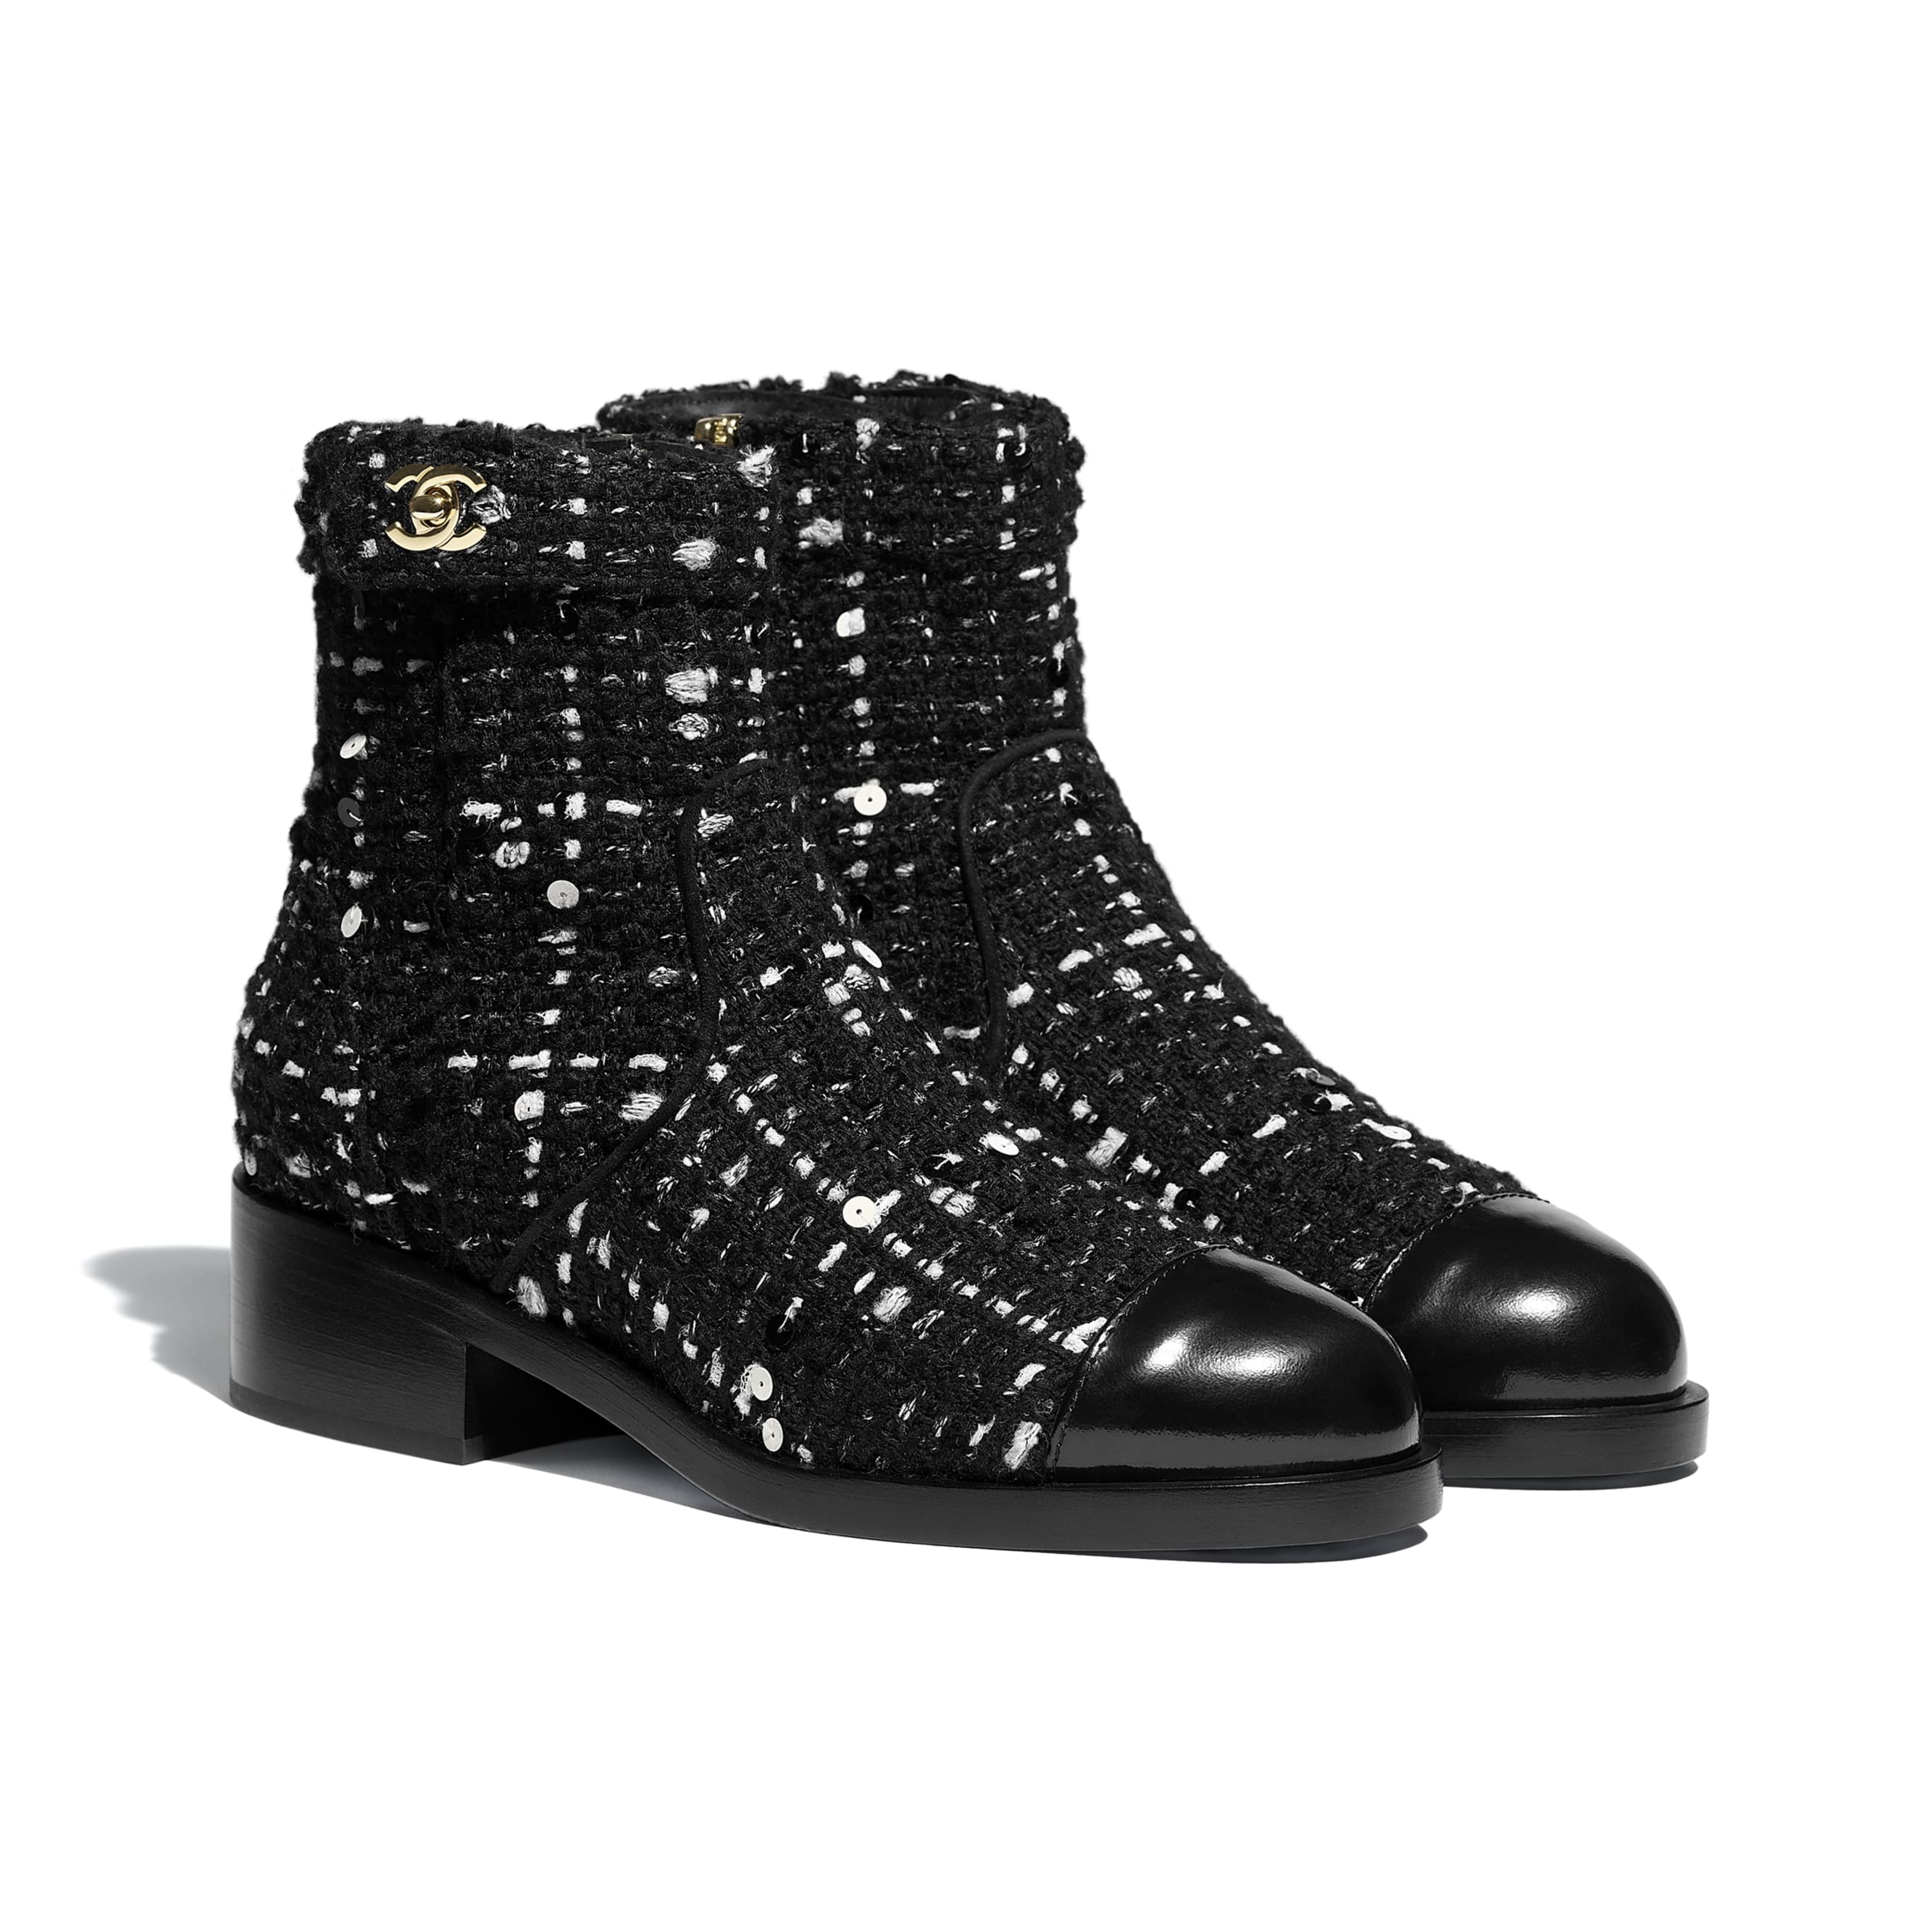 Ankle Boots - Black & White - Tweed & Calfskin - CHANEL - Alternative view - see standard sized version